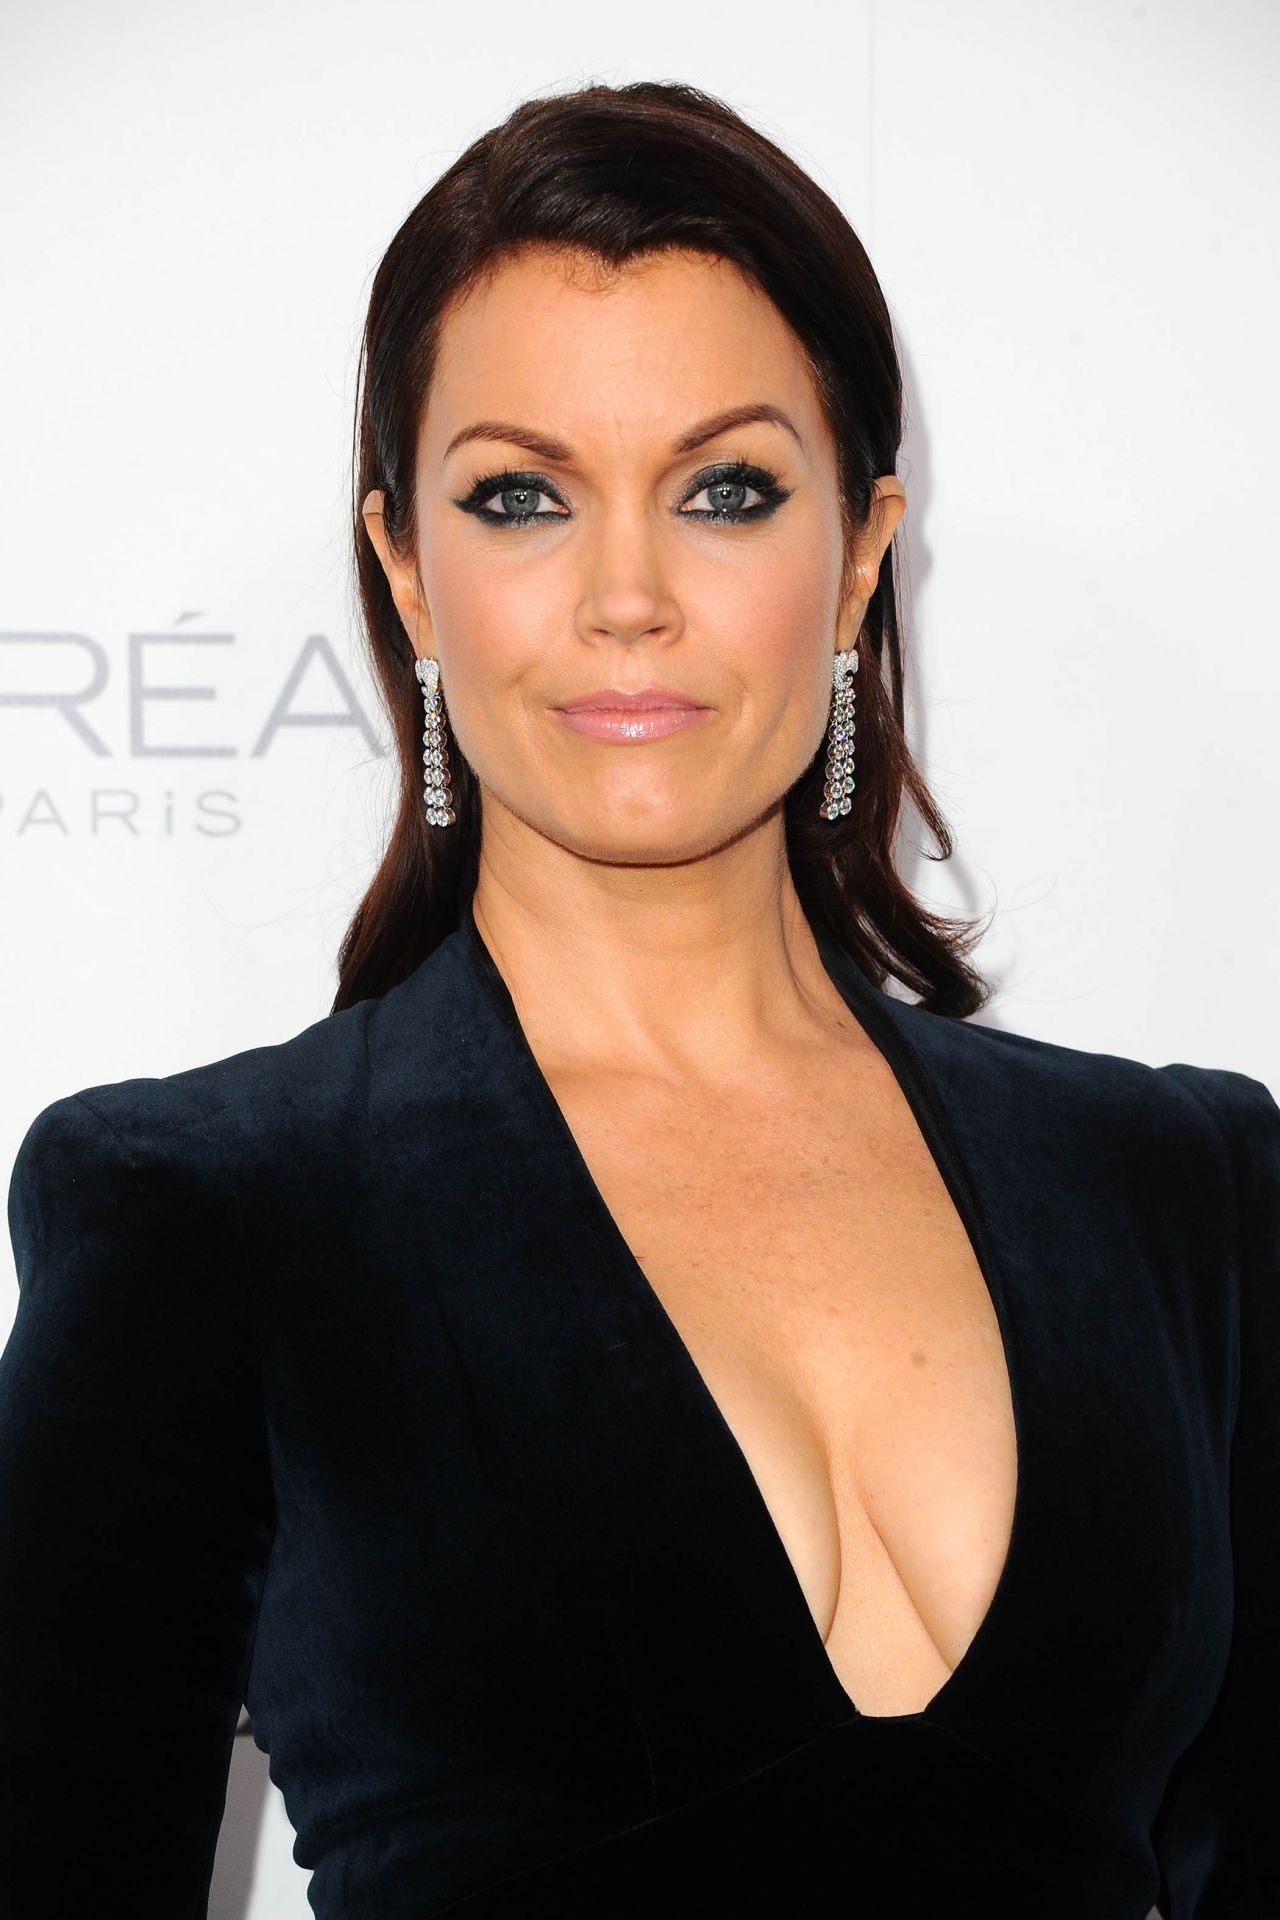 Fotos Bellamy Young nudes (34 foto and video), Ass, Sideboobs, Selfie, swimsuit 2015